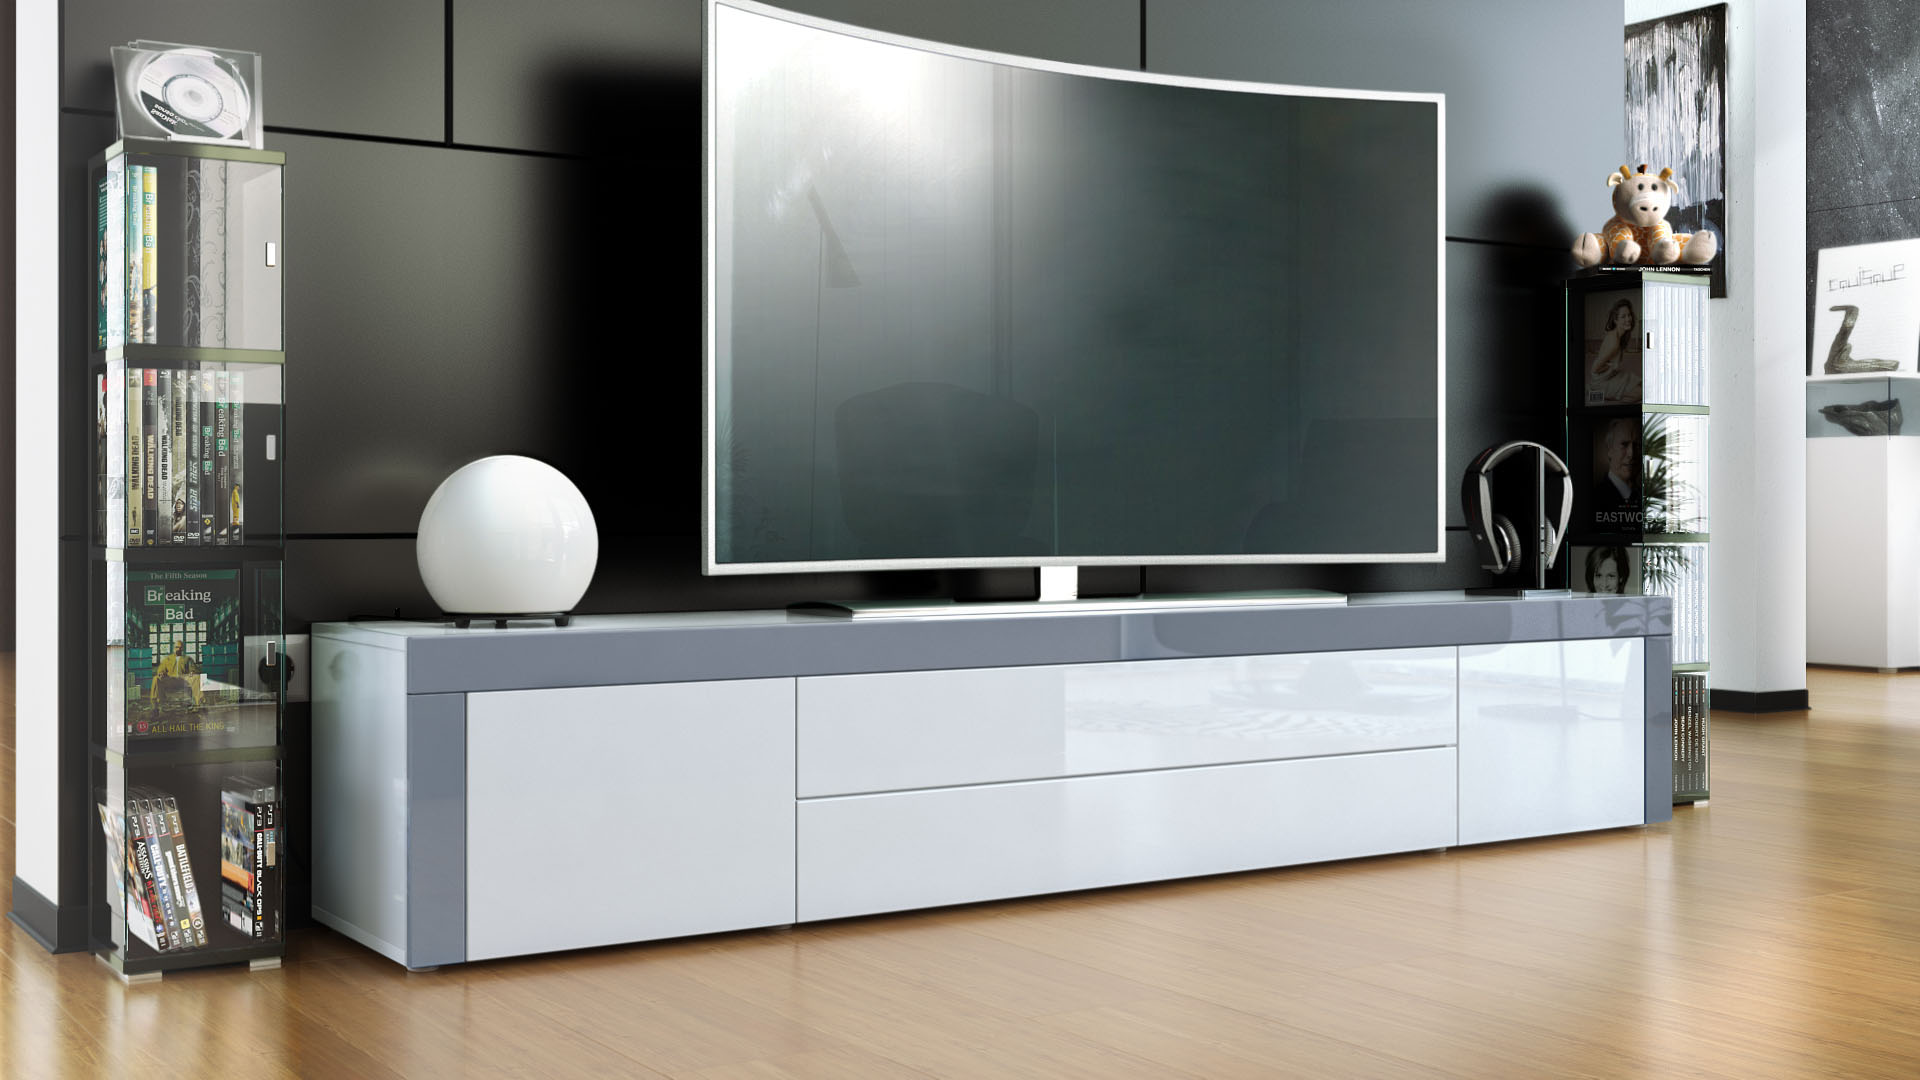 tv stand board unit lowboard cabinet la paz white high gloss natural tones ebay. Black Bedroom Furniture Sets. Home Design Ideas